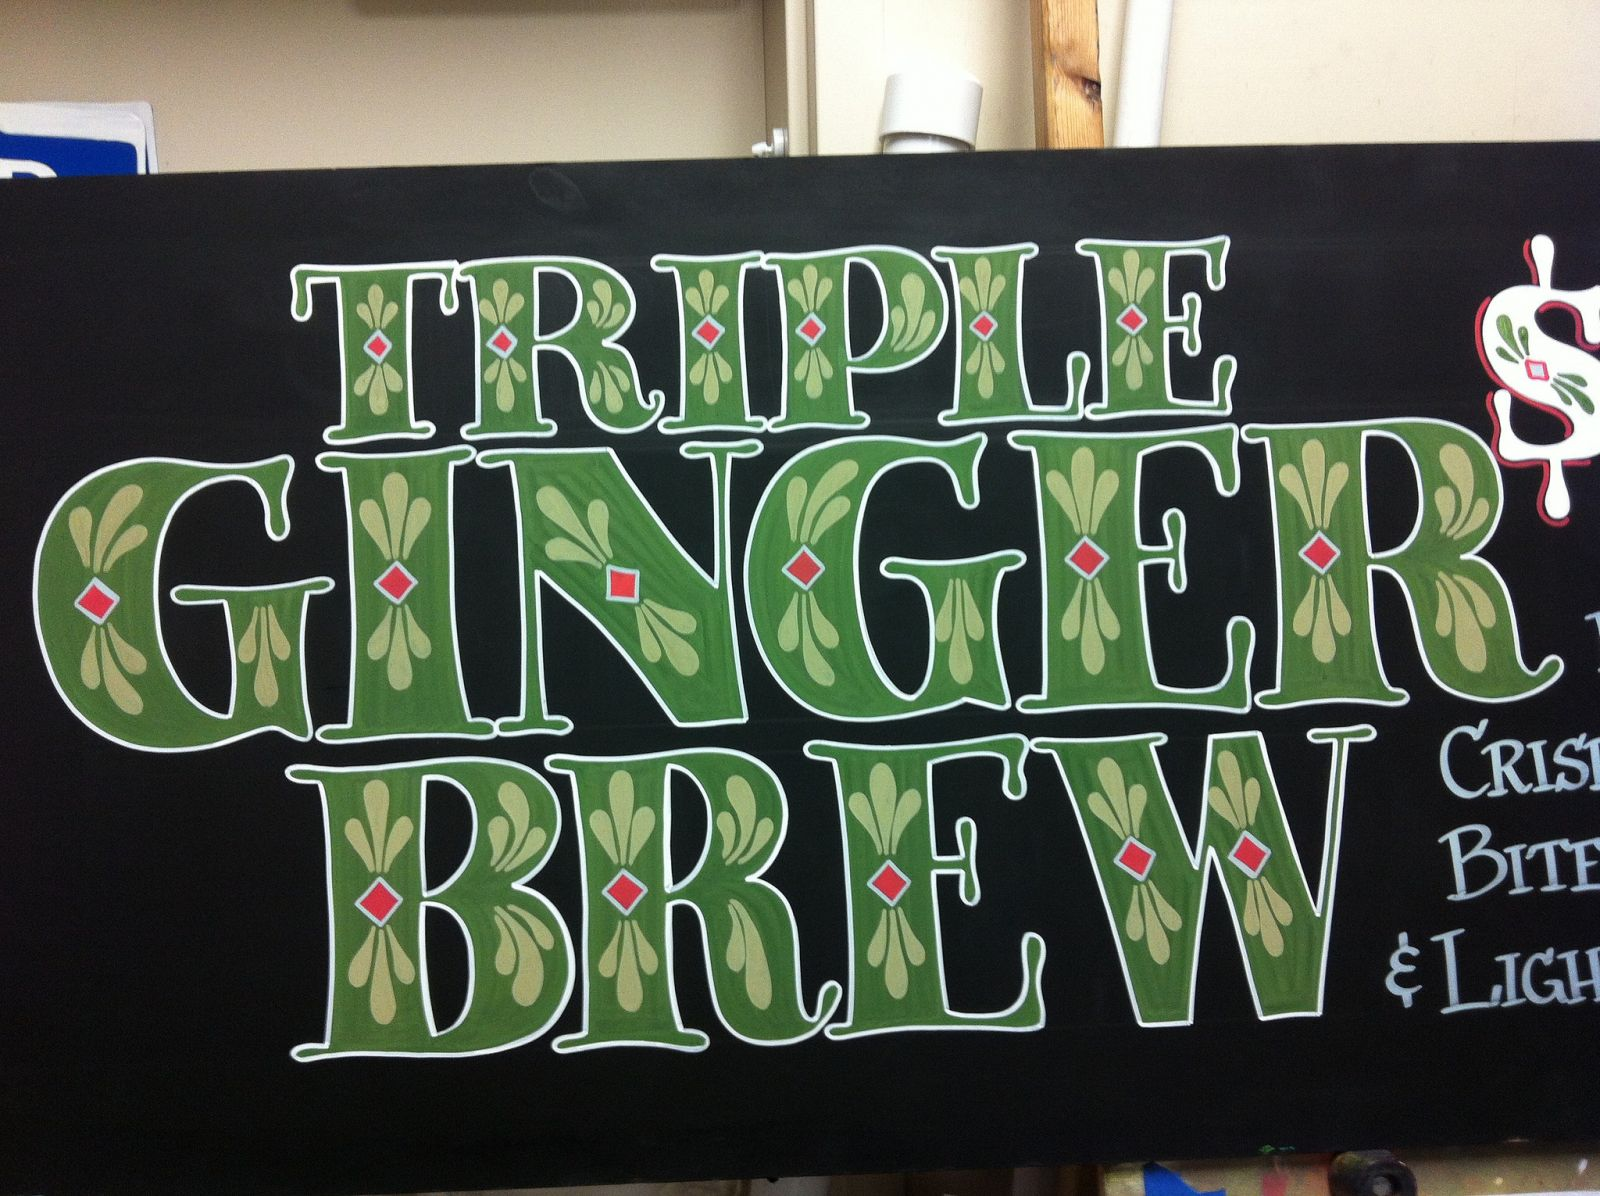 Ginger Brew by Katy Kristin